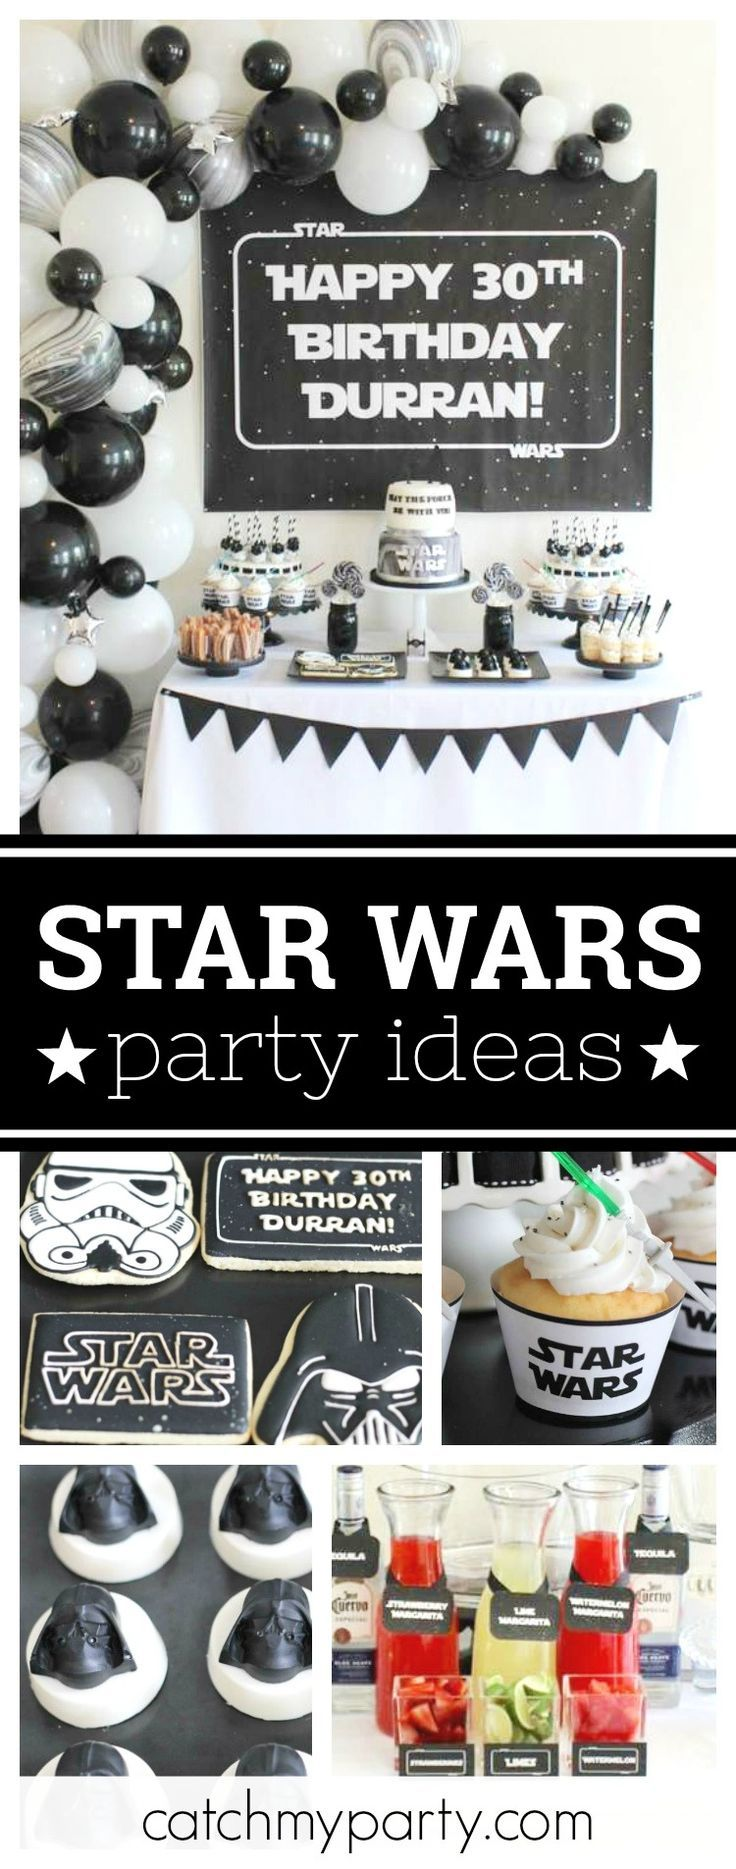 Check out this awesome 30th birthday Star Wars birthday party. The cupcakes topped with mini light sabers are so cool!! See more party ideas and share yours at CatchMyParty.com